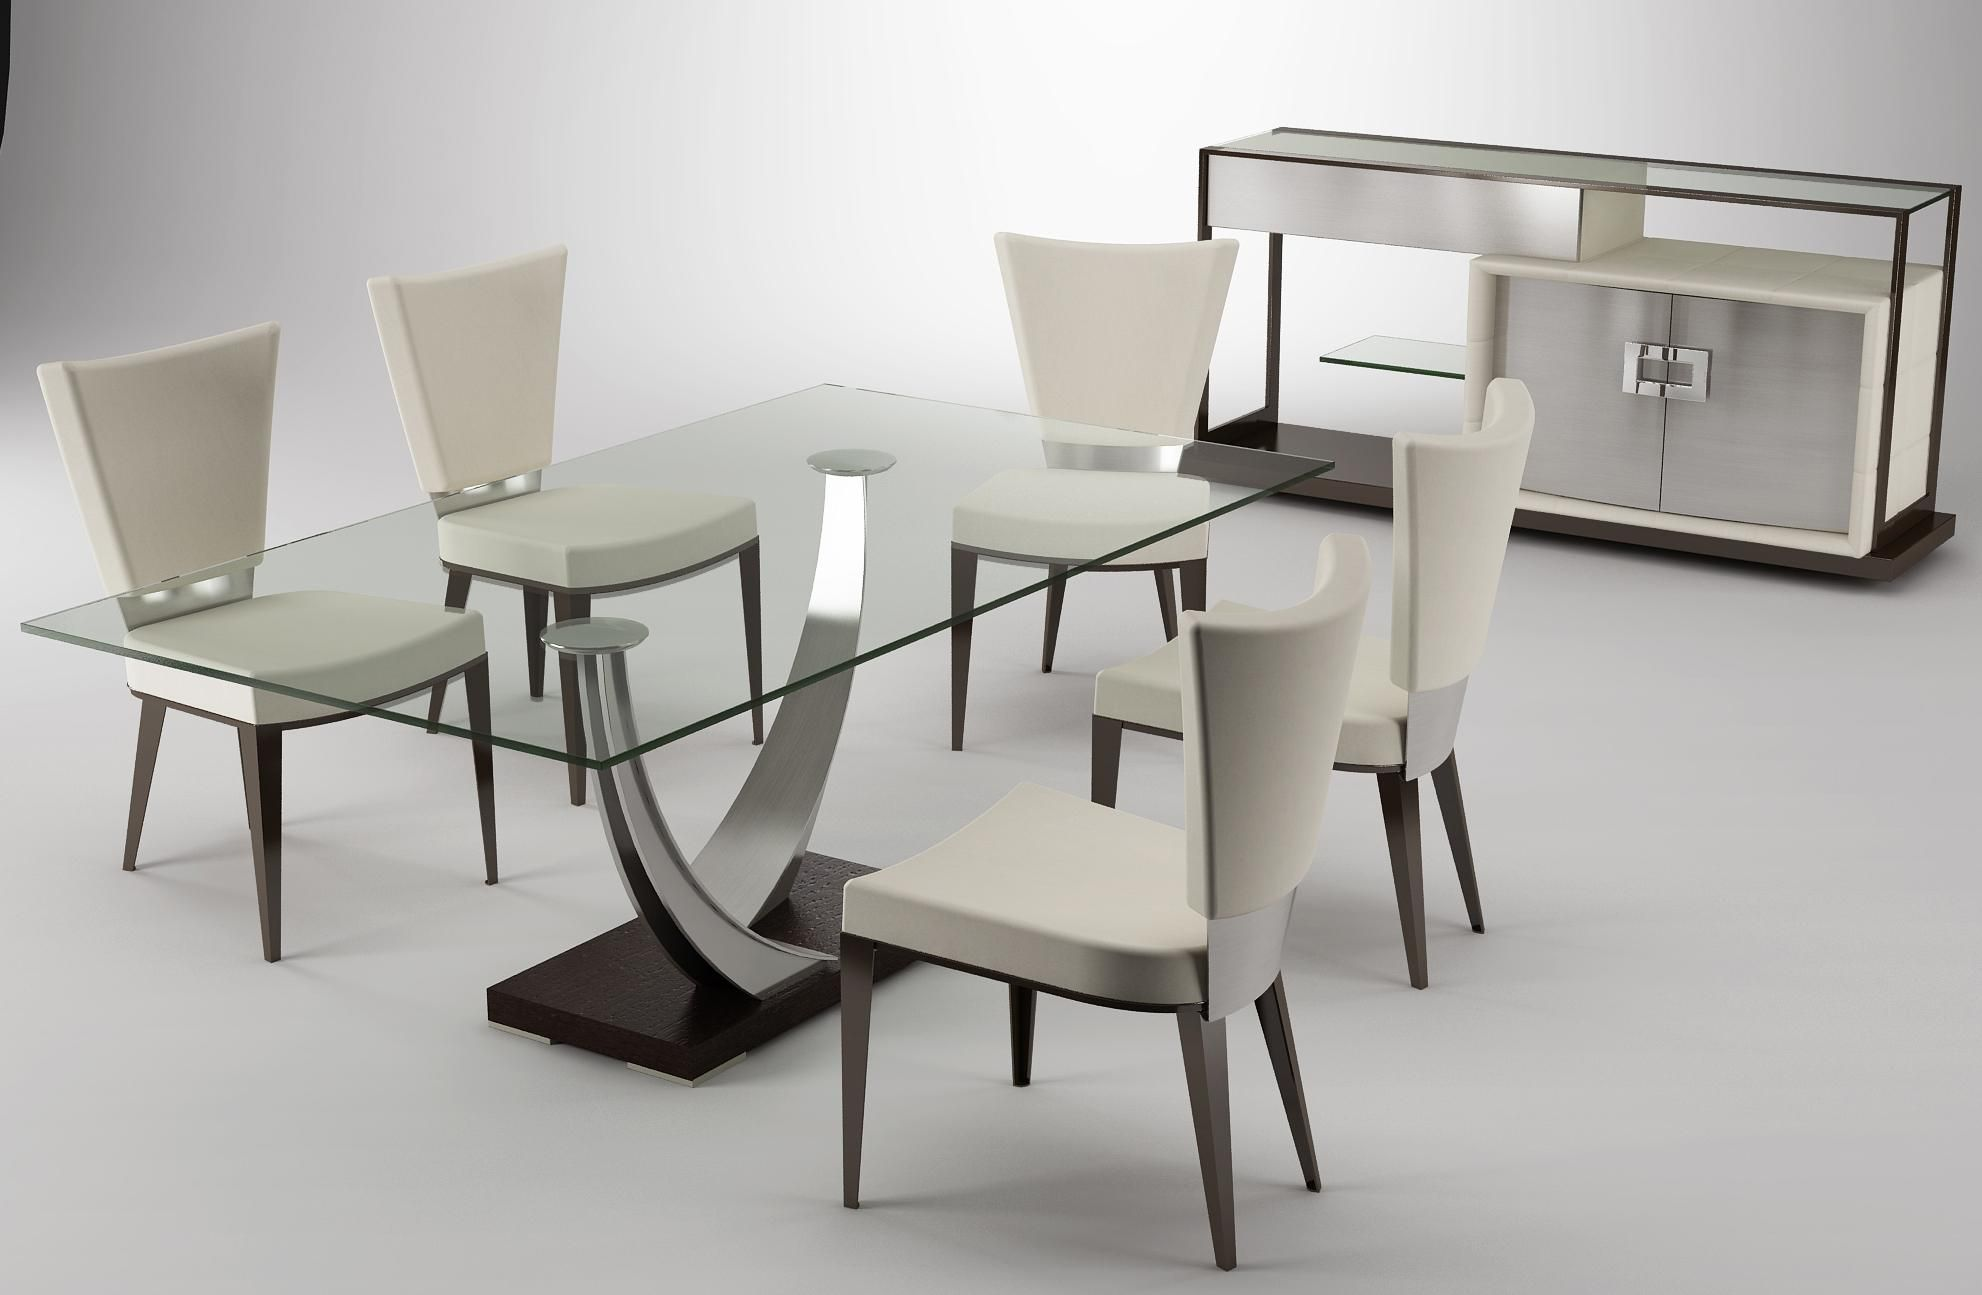 amazing modern stylish dining room table set designs elite tangent glass top furniture stores with tables - Contemporary Dining Room Furniture